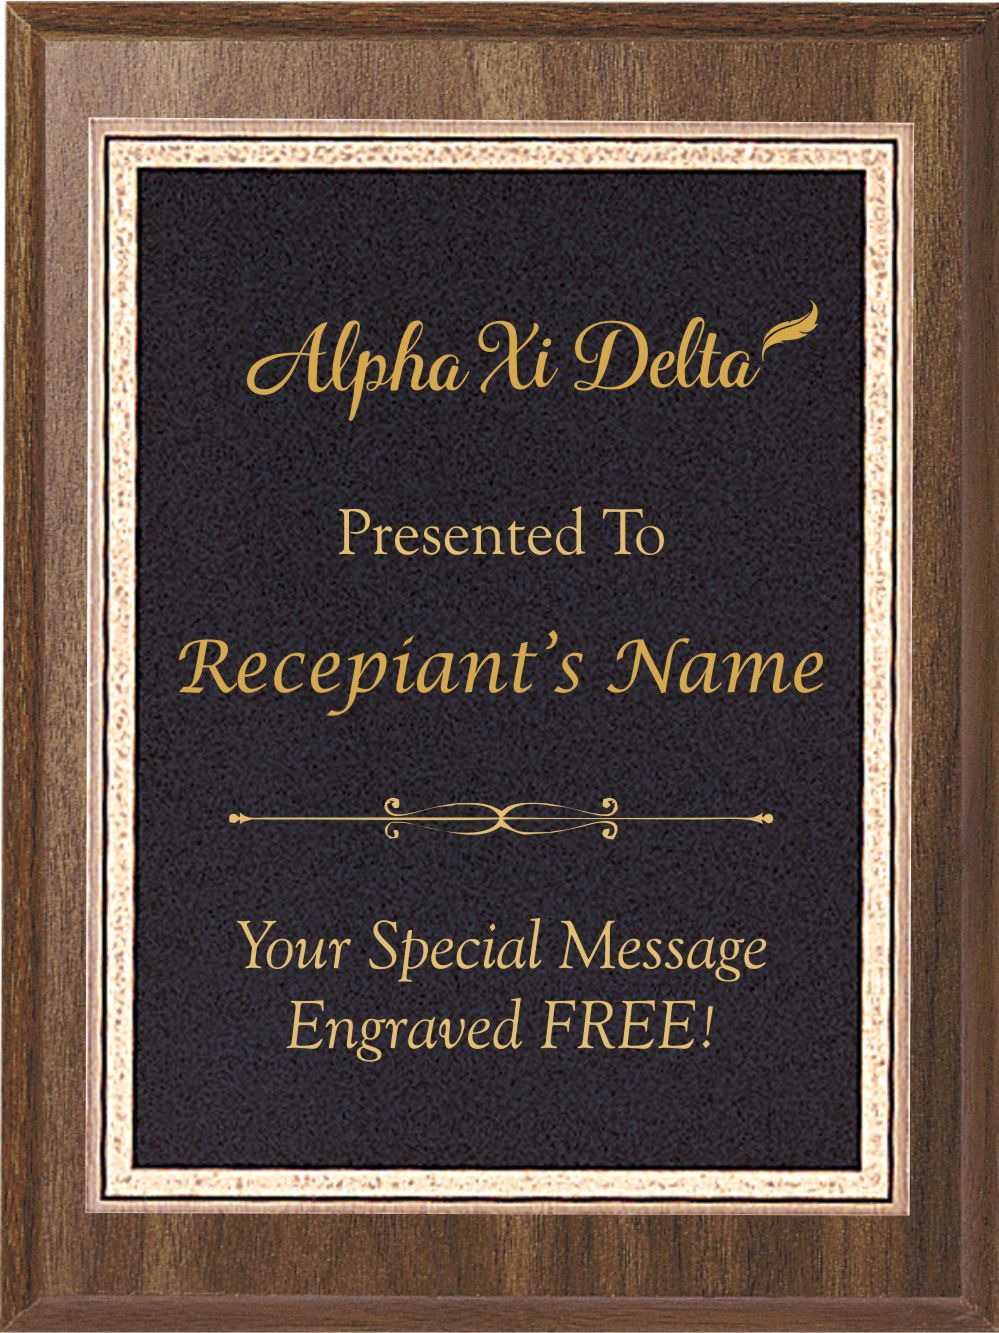 Alpha Xi Delta Awards